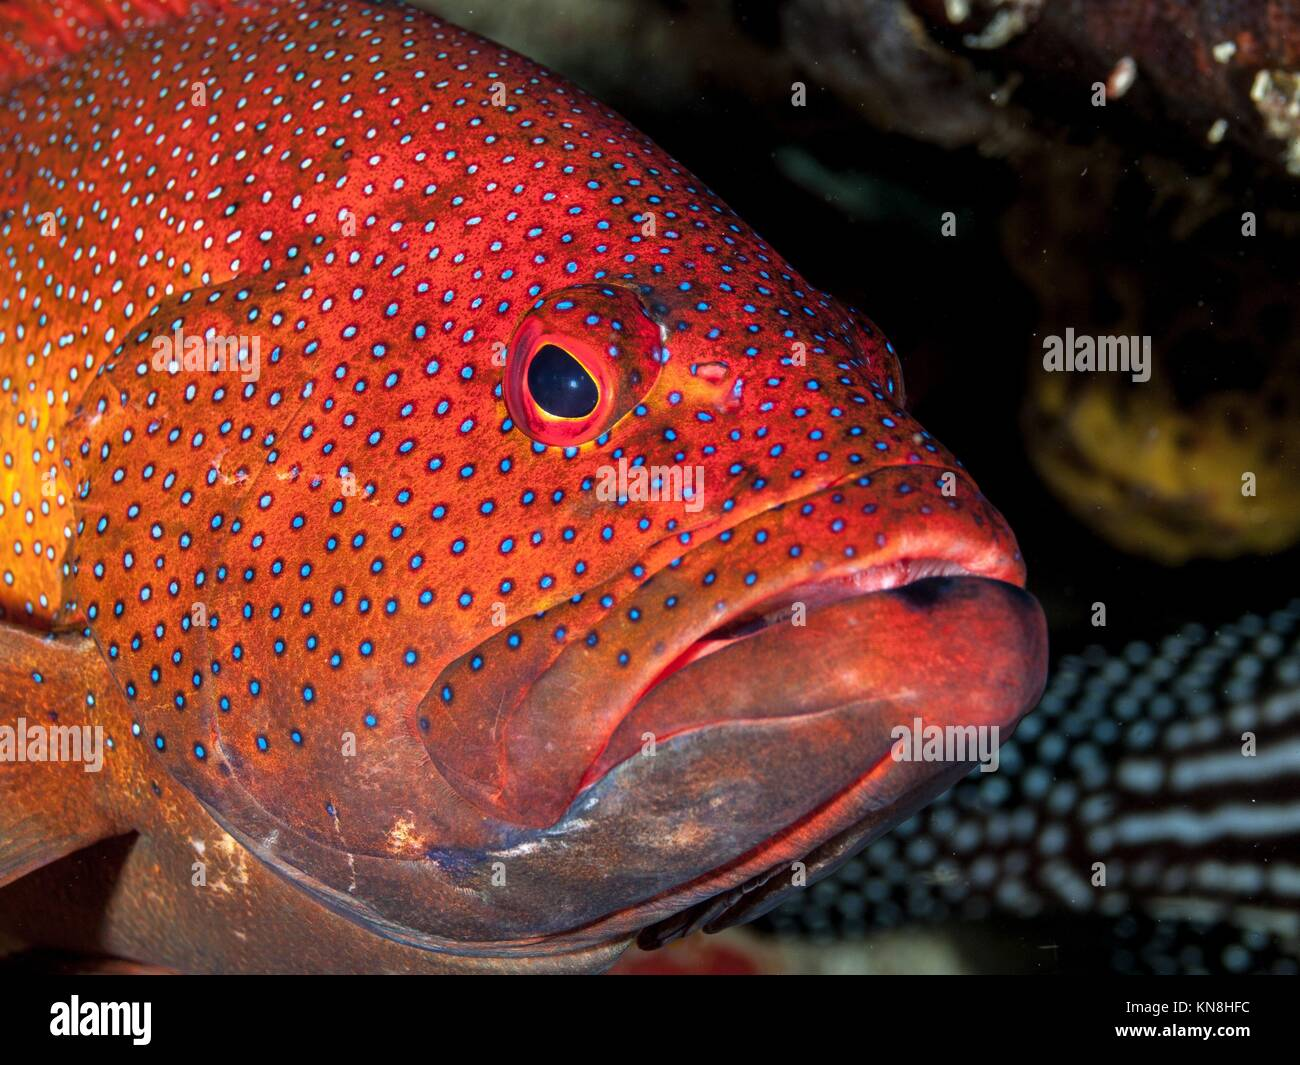 Coney Fish Caribbean Stock Photos & Coney Fish Caribbean Stock ...